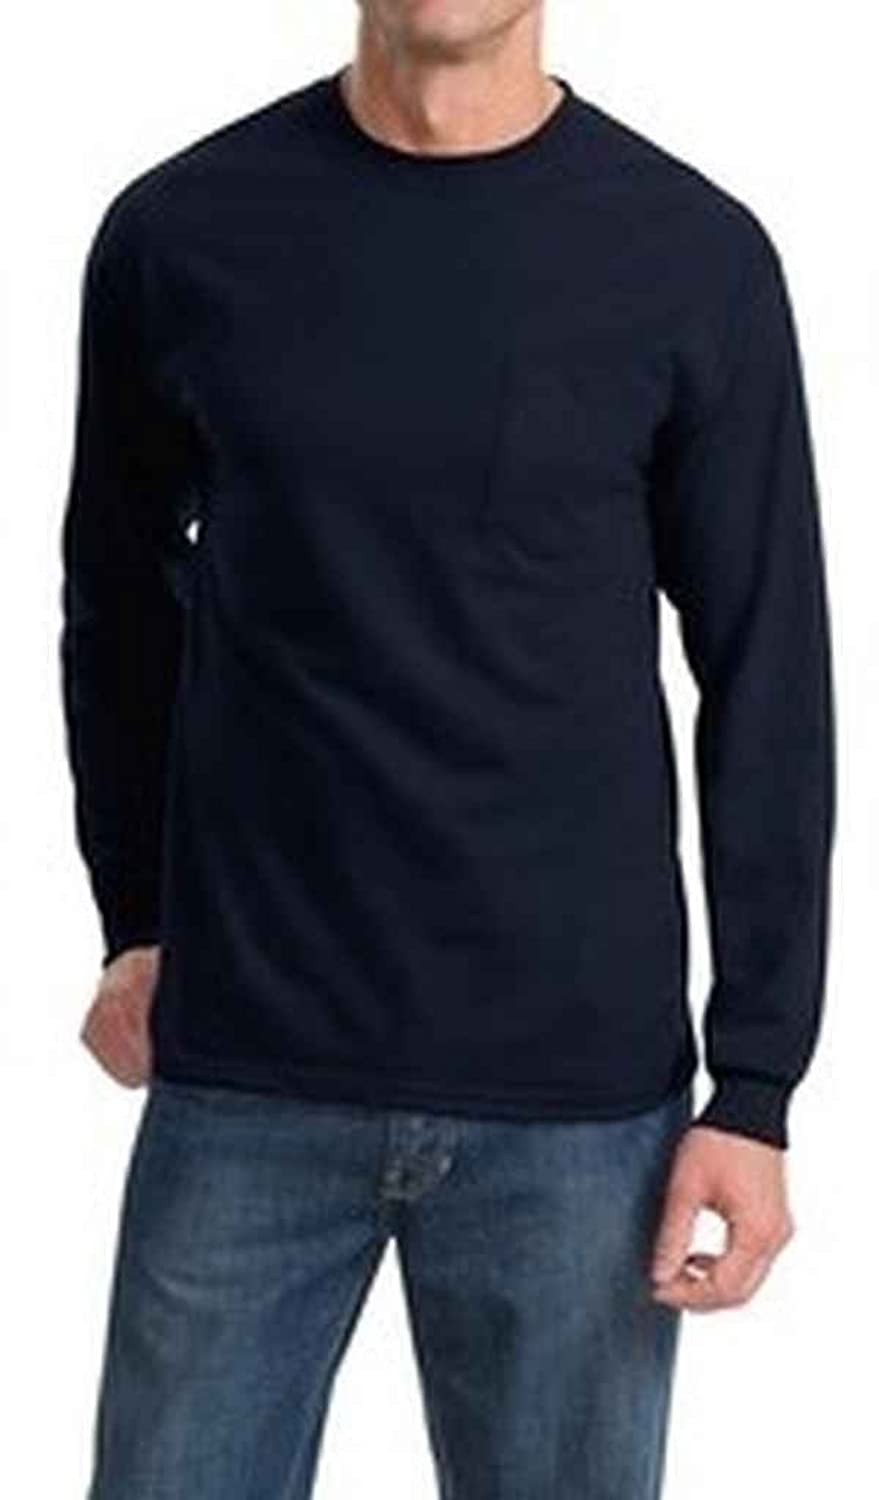 Port & Company - 100% Cotton Long Sleeve T-Shirt with Pocket. PC61LSP